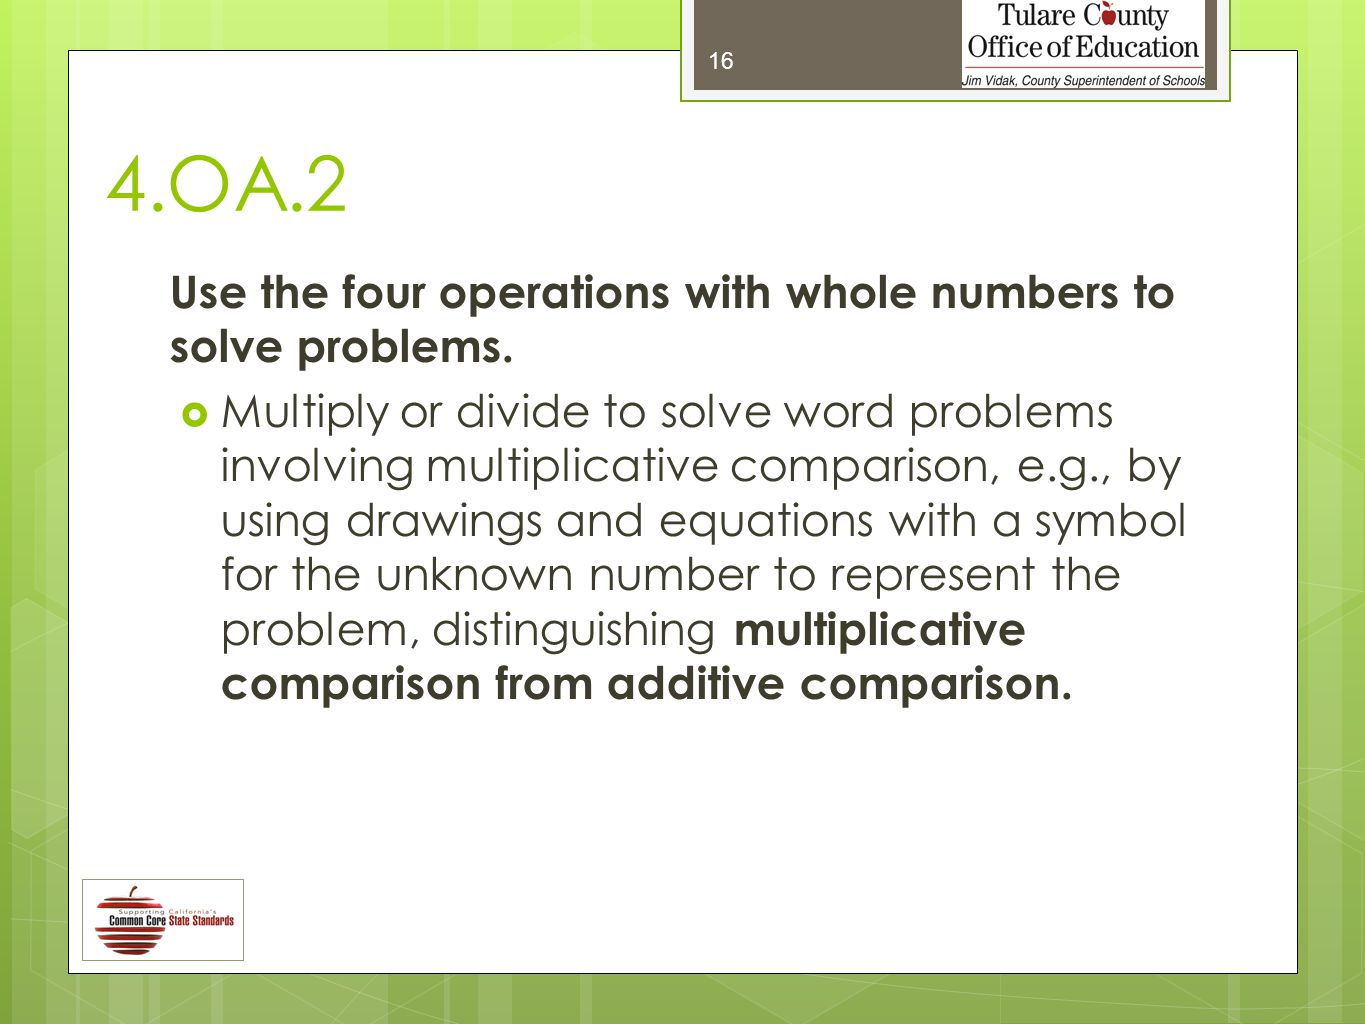 4.OA.2 Use the four operations with whole numbers to solve problems.